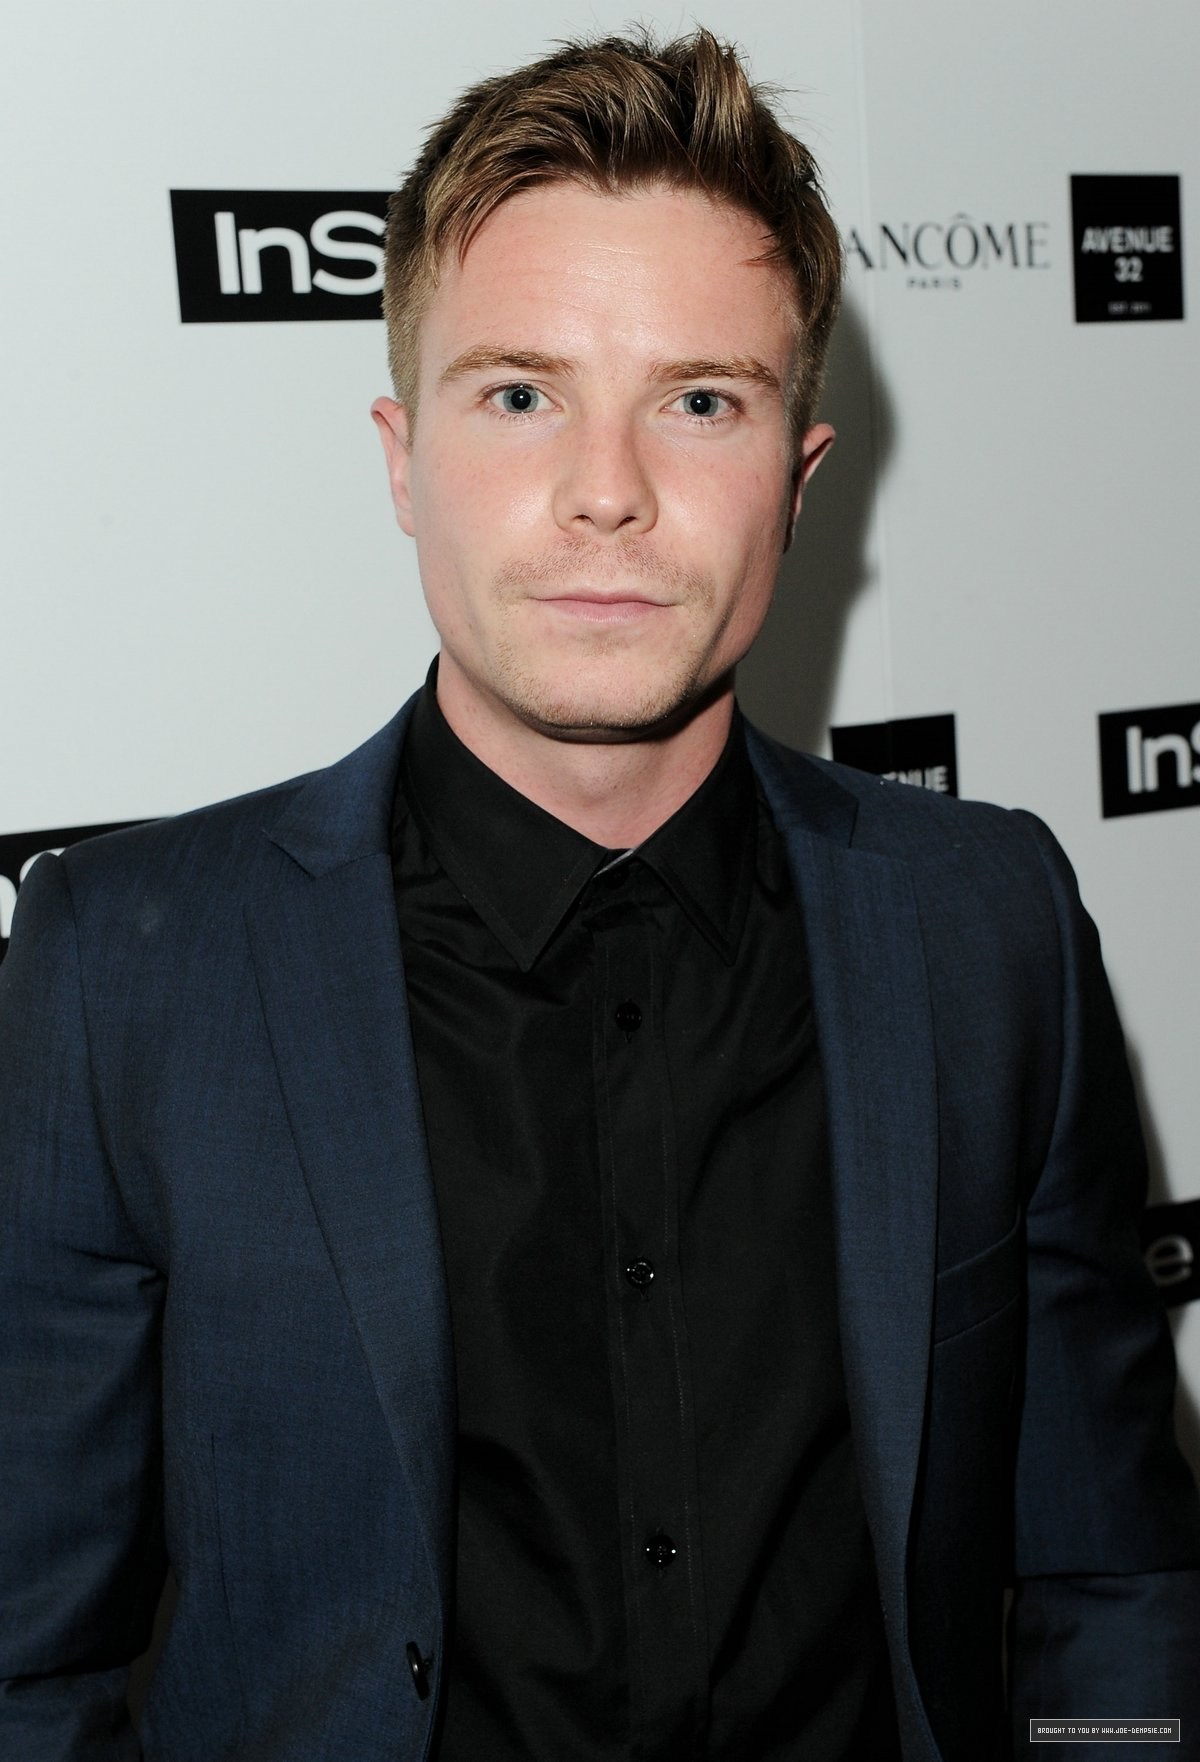 Joe Dempsie | Known people - famous people news and ...